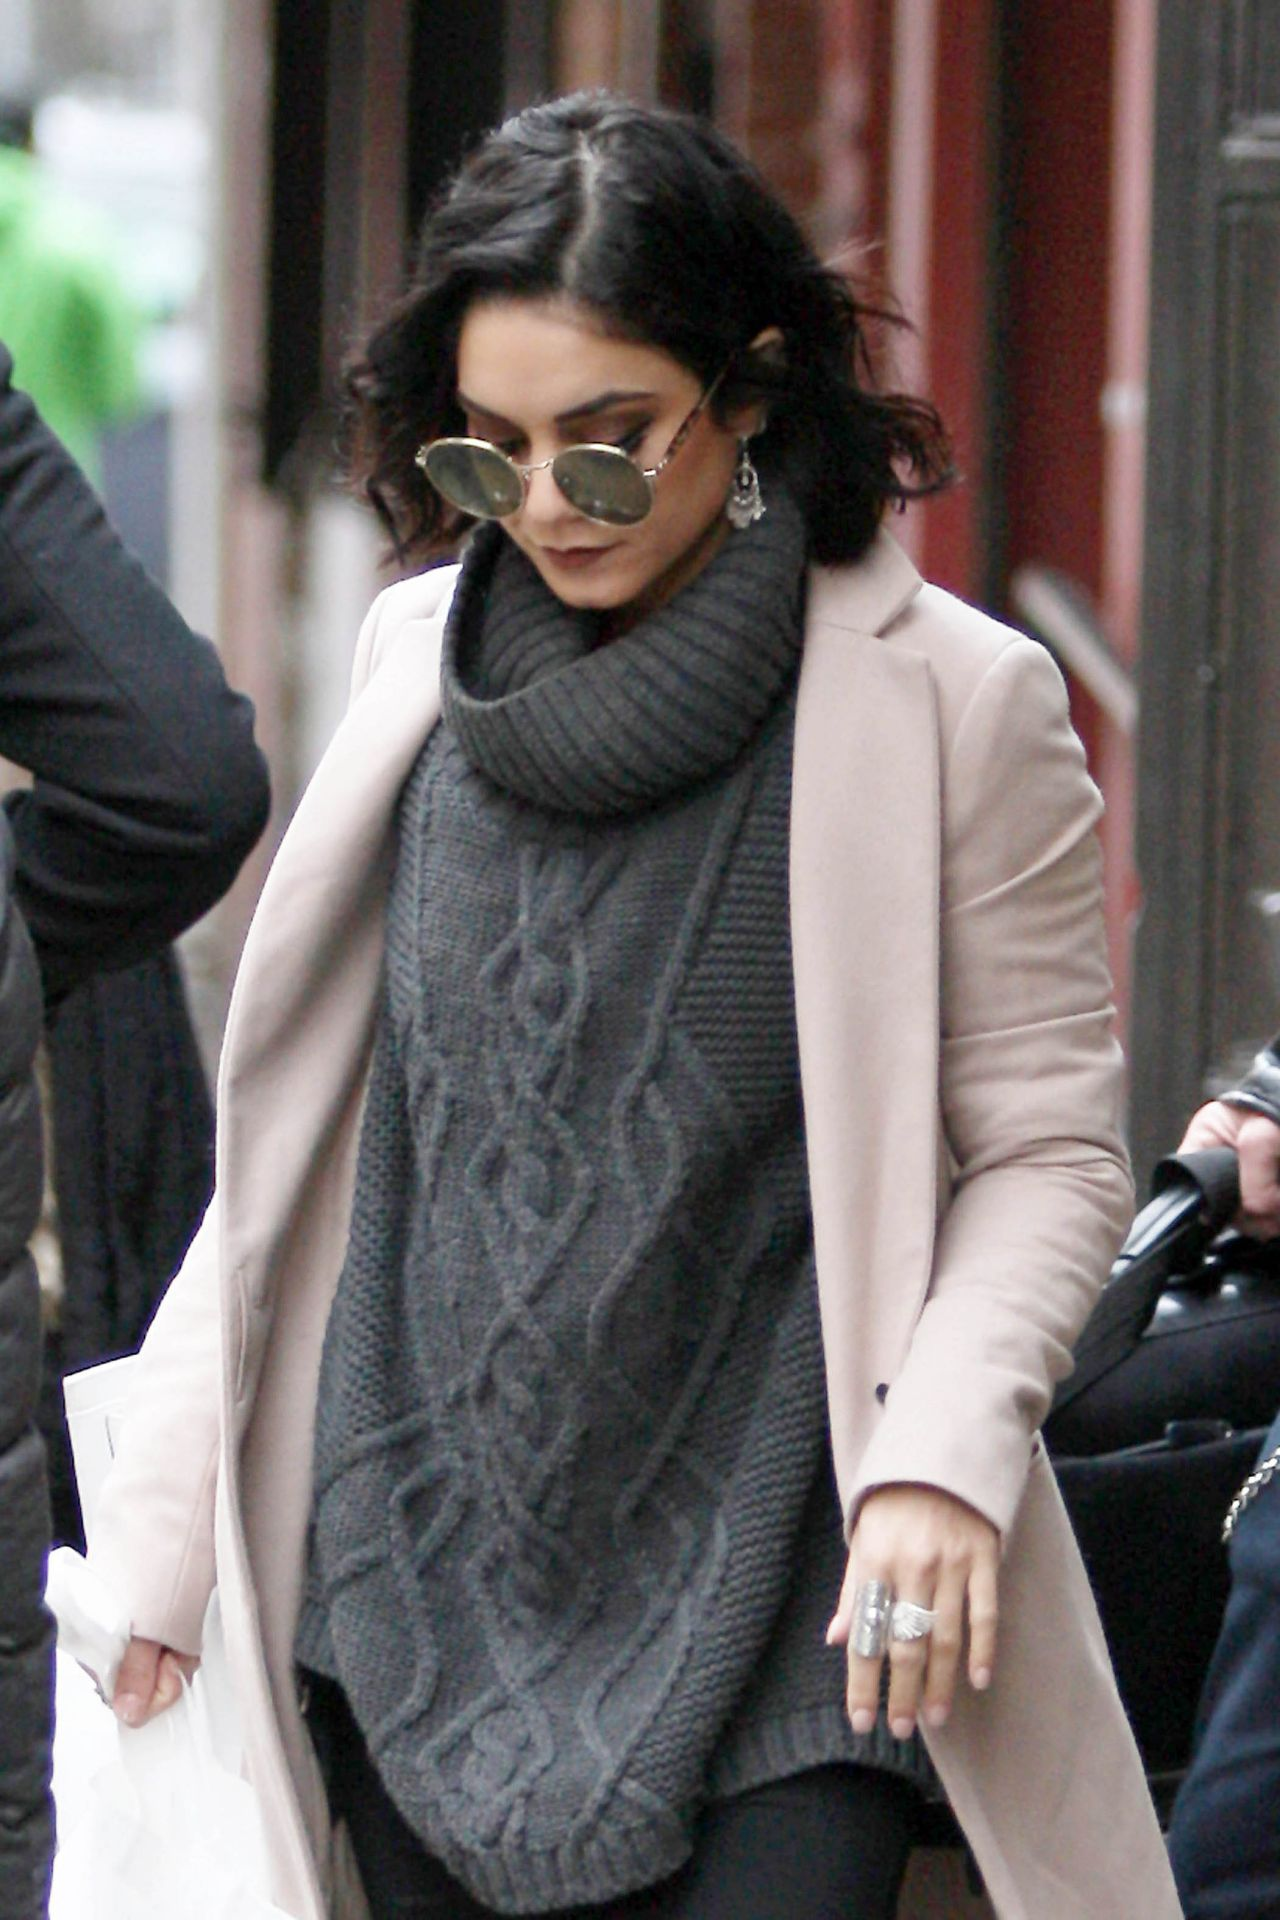 Vanessa Hudgens 2015 Celebrity Photos Style Leaving Her Hotel In New York City April